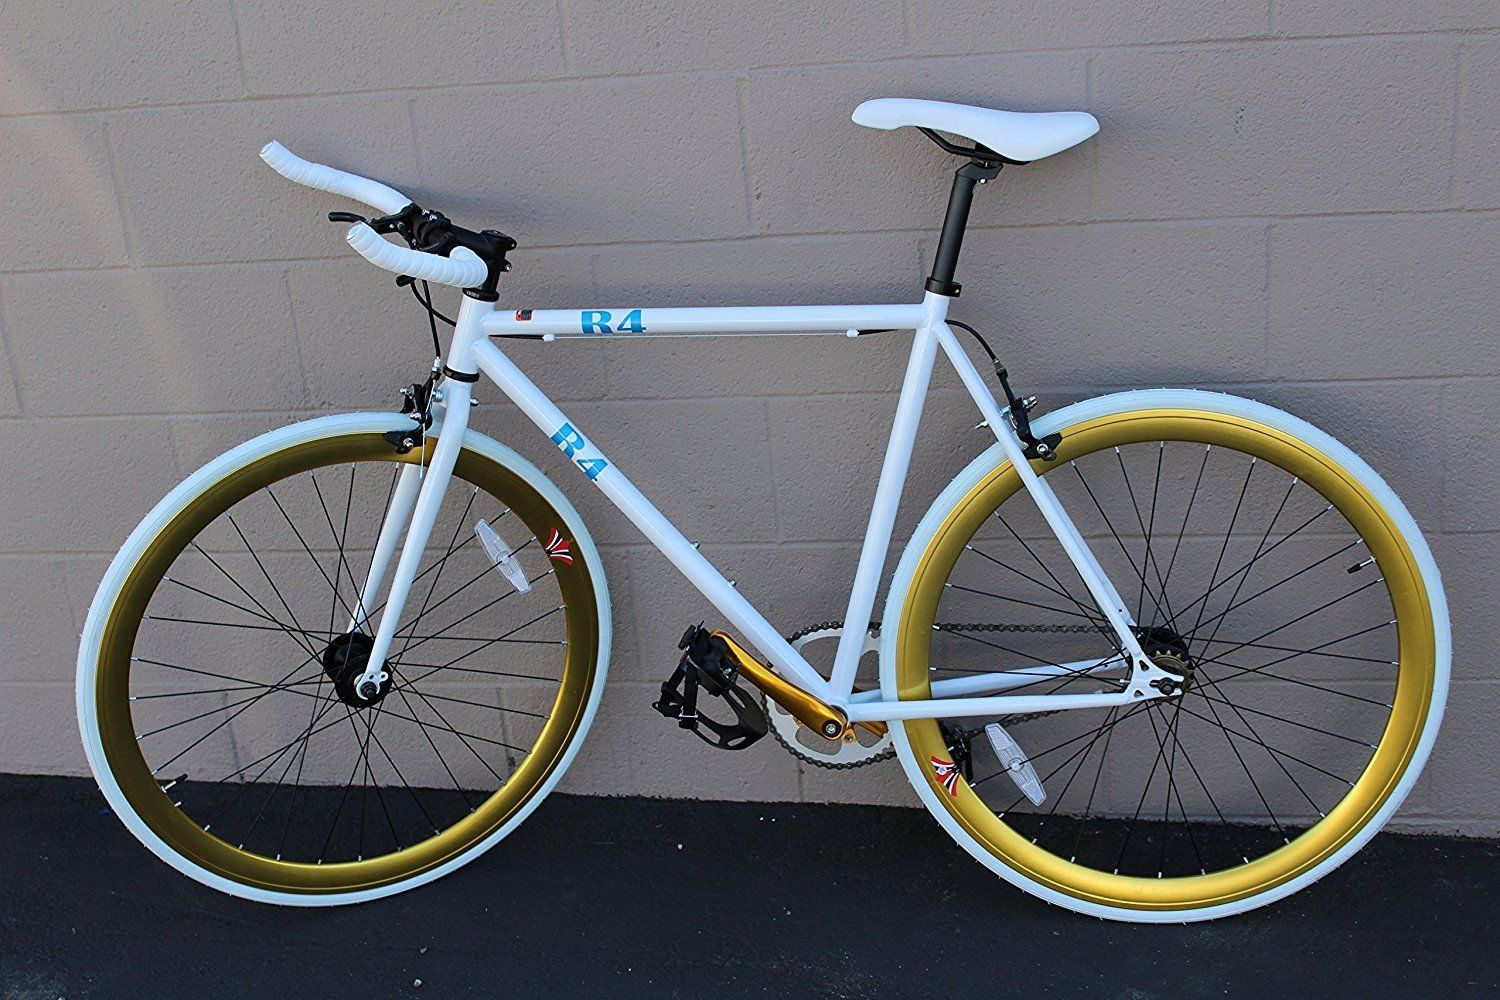 deedb43b7 ON SALE  R4 White   Gold Fixie Urban Road Bike W  Bull Bars